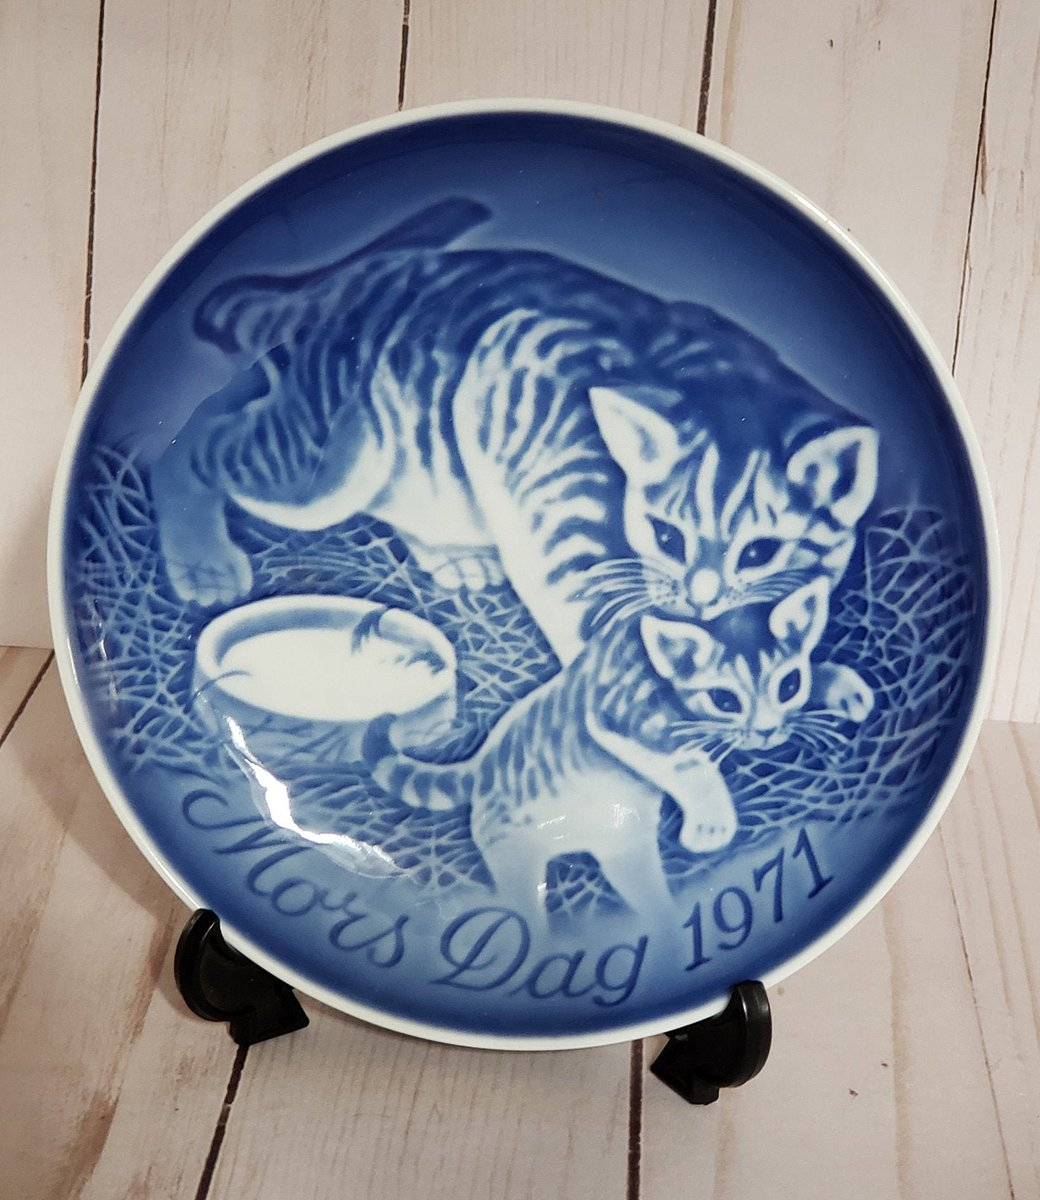 Vintage B&G Mother's Day 1971 Blue and White Decorative Plate Featuring Mother Cat With Kitten From Bing and Grondahl Copenhagen Porcelain https://t.co/mwVZfCGCF4 #vintage #decorativeplate #limitededition #collectible #collection #retro #friend #mothersday #mother https://t.co/CMCVDSxL7H